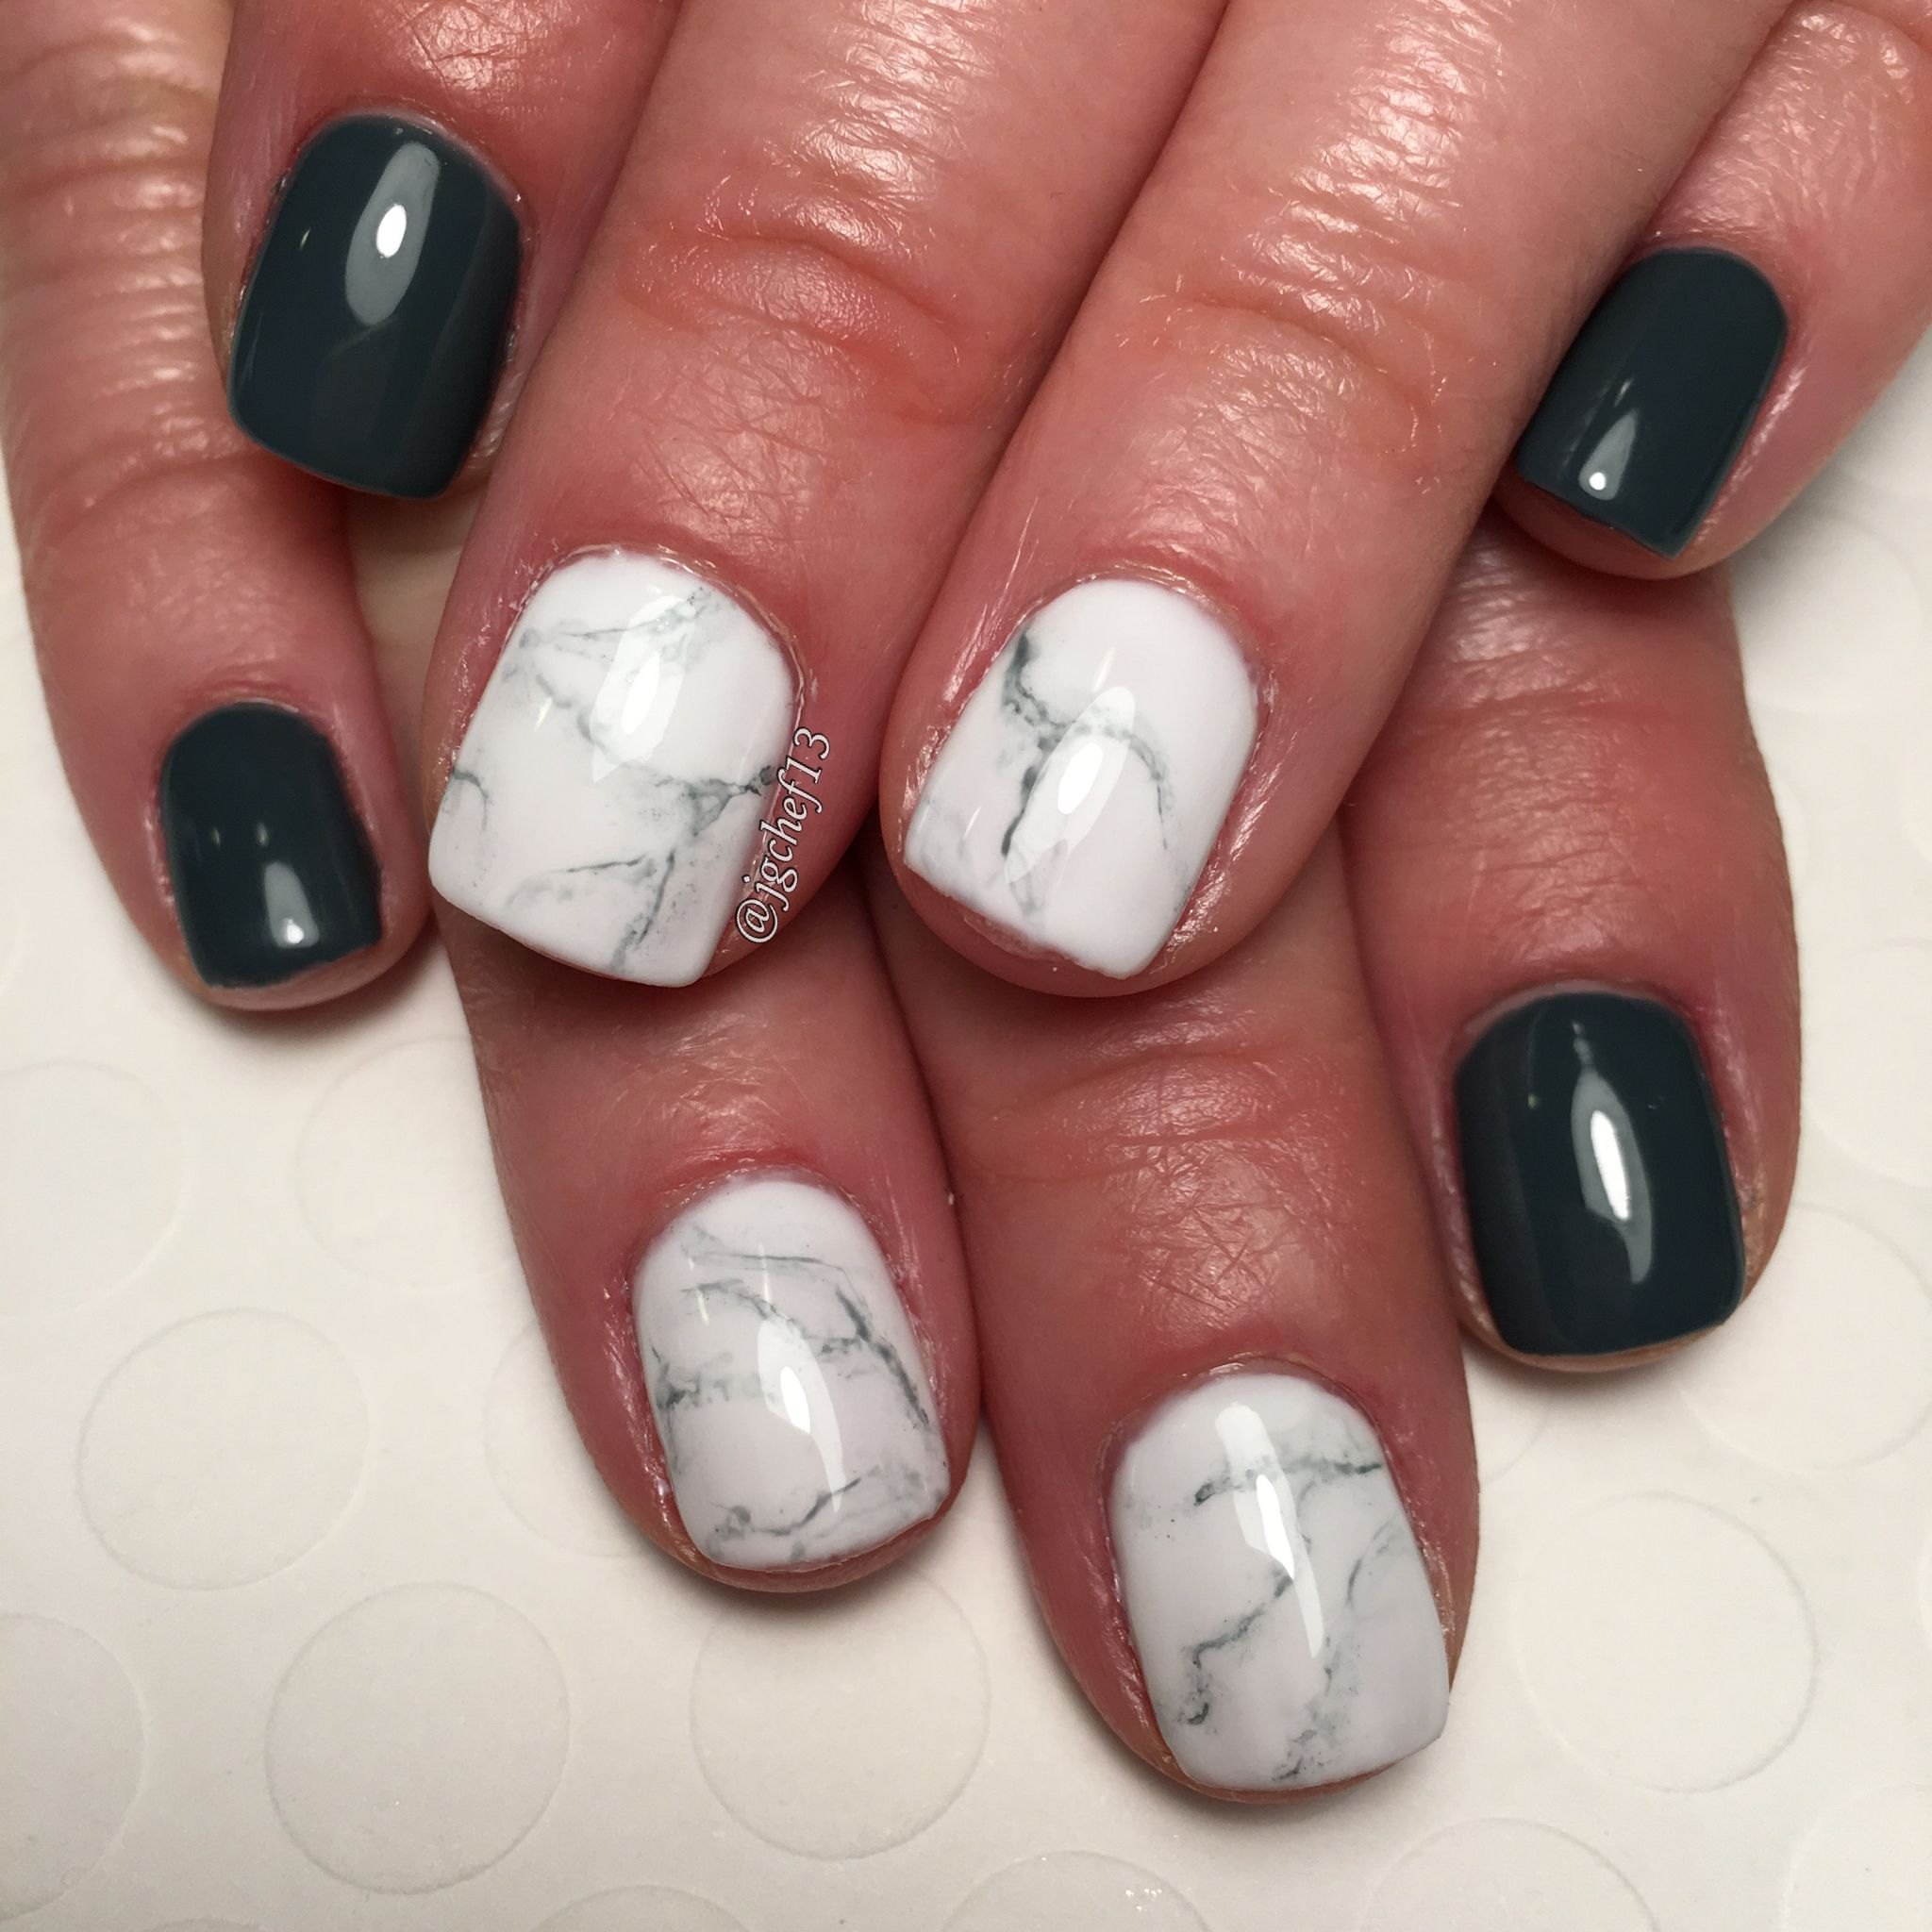 Dark gray blue with marble accent nails. See more of my designs on my nail board @jgchef13 or my IG account @jgchef13.